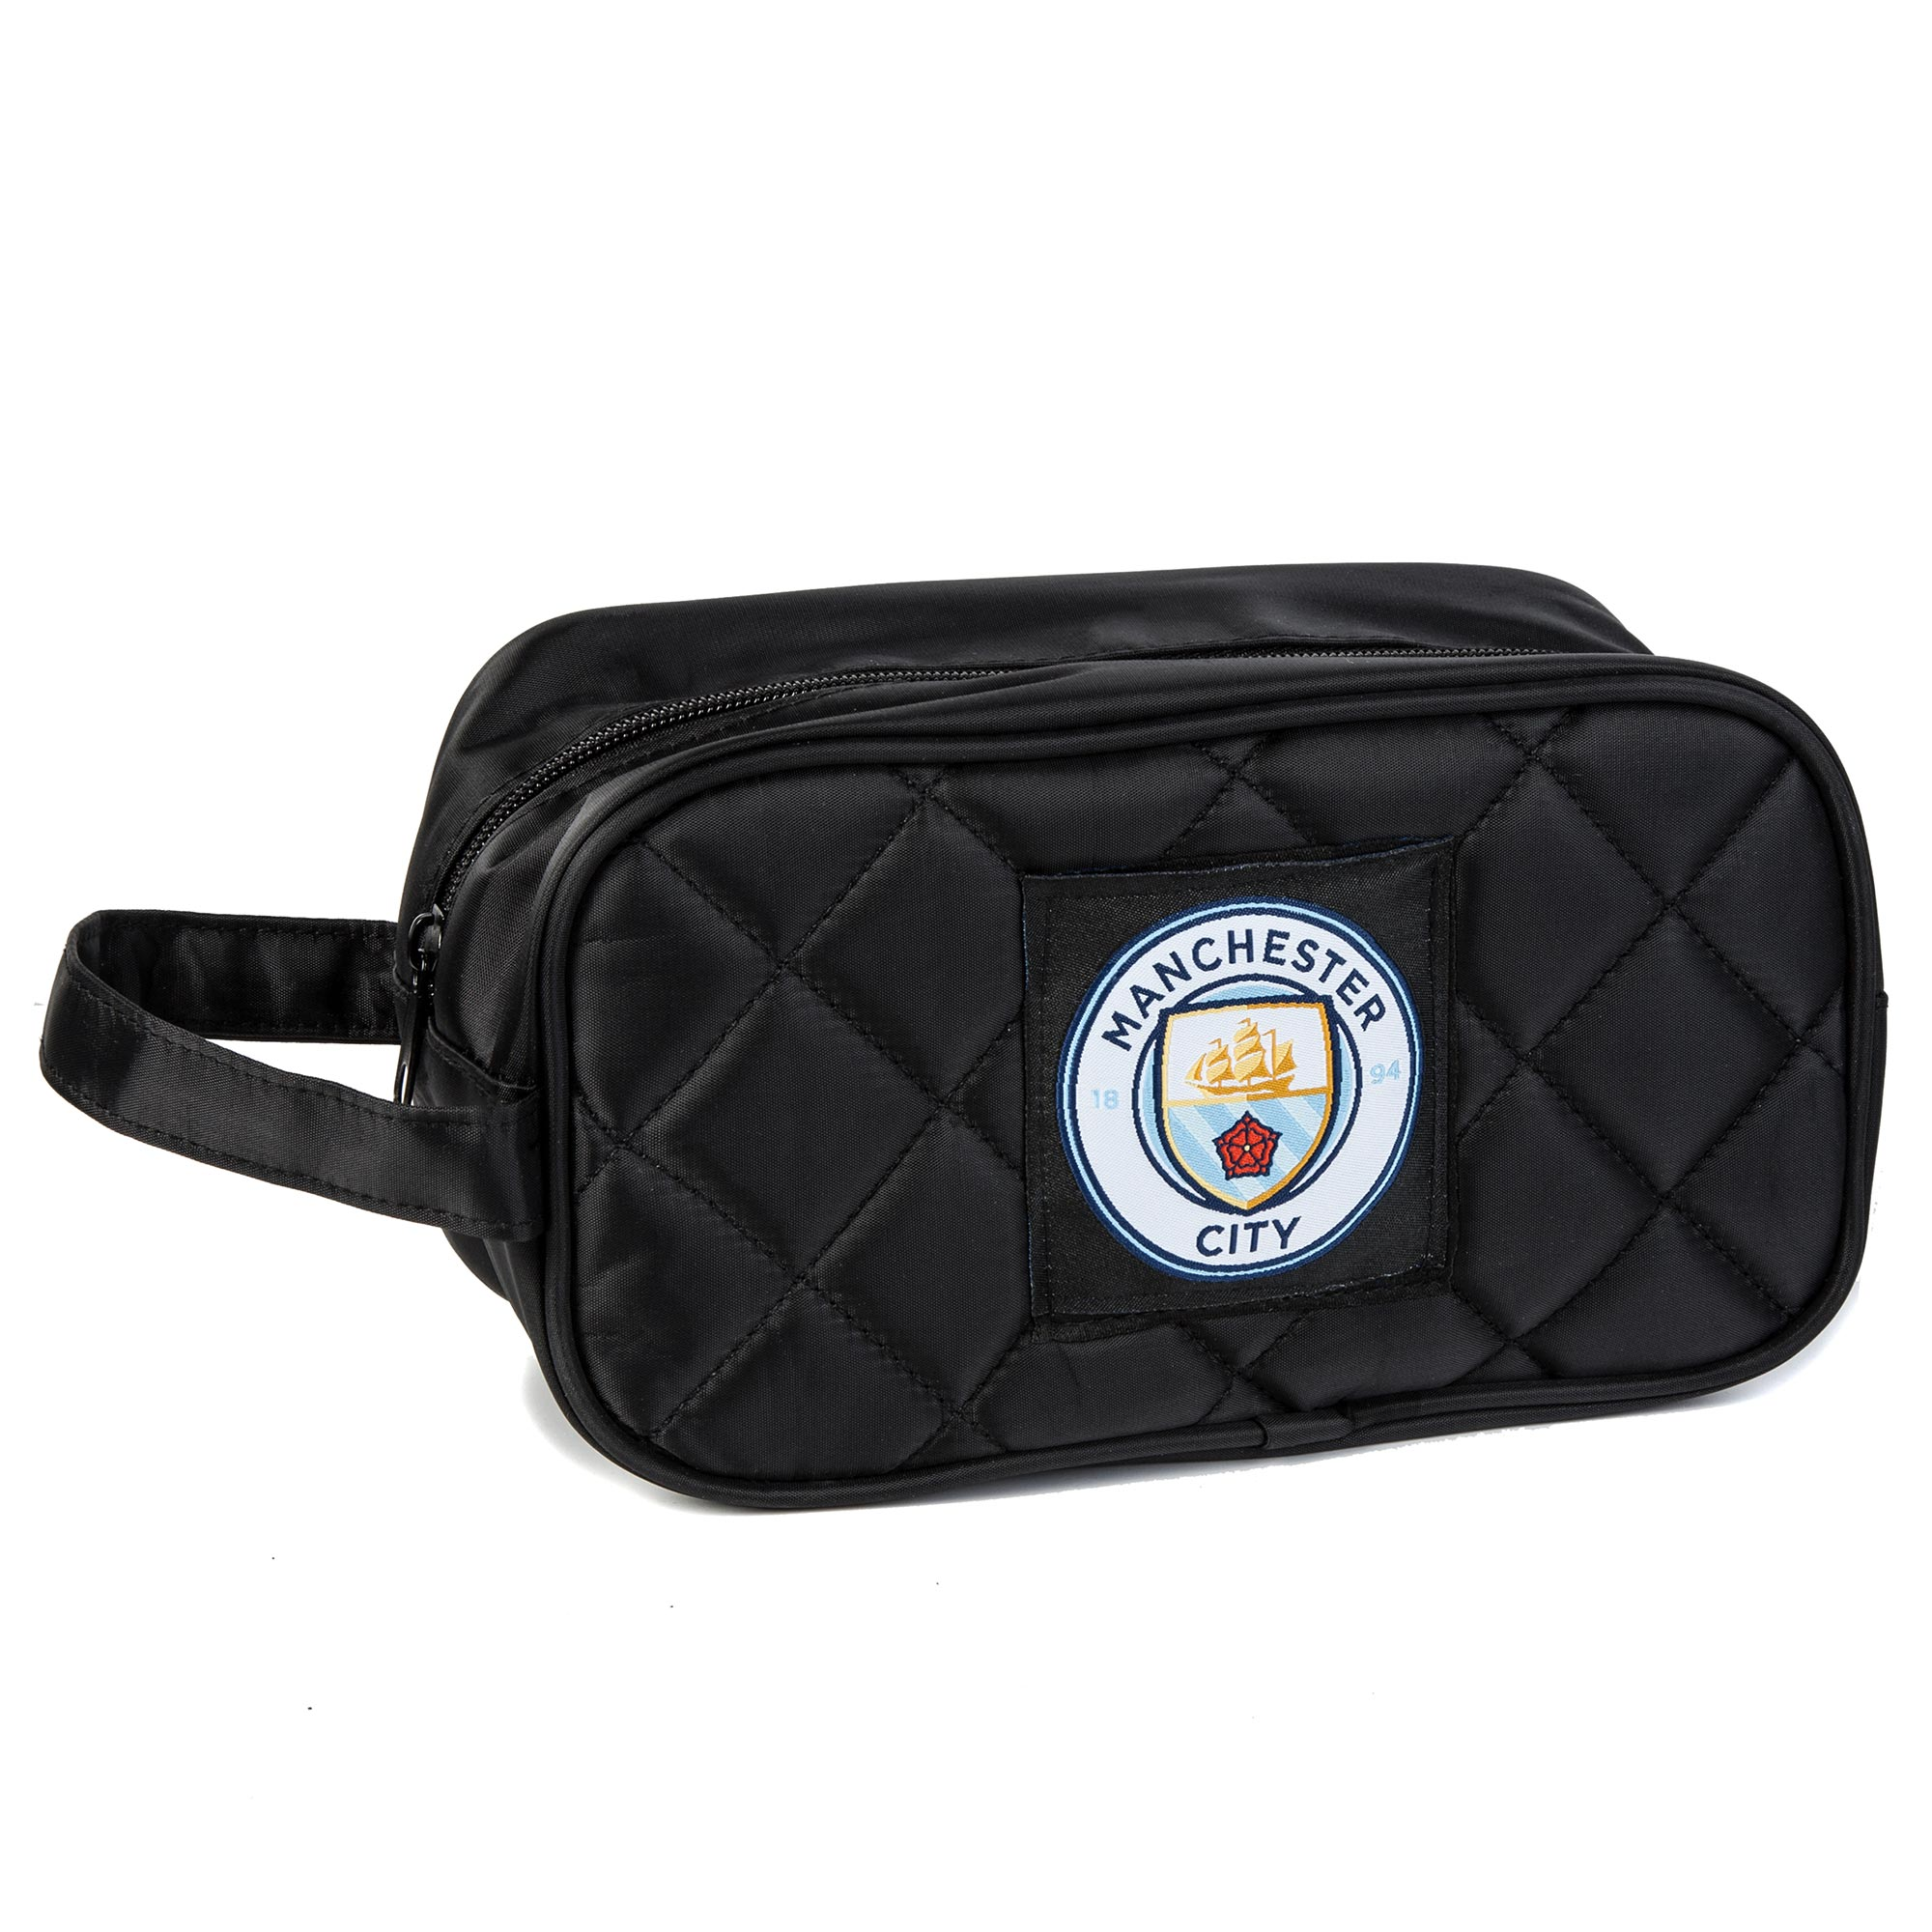 Manchester City Toiletry Bag Gift Set